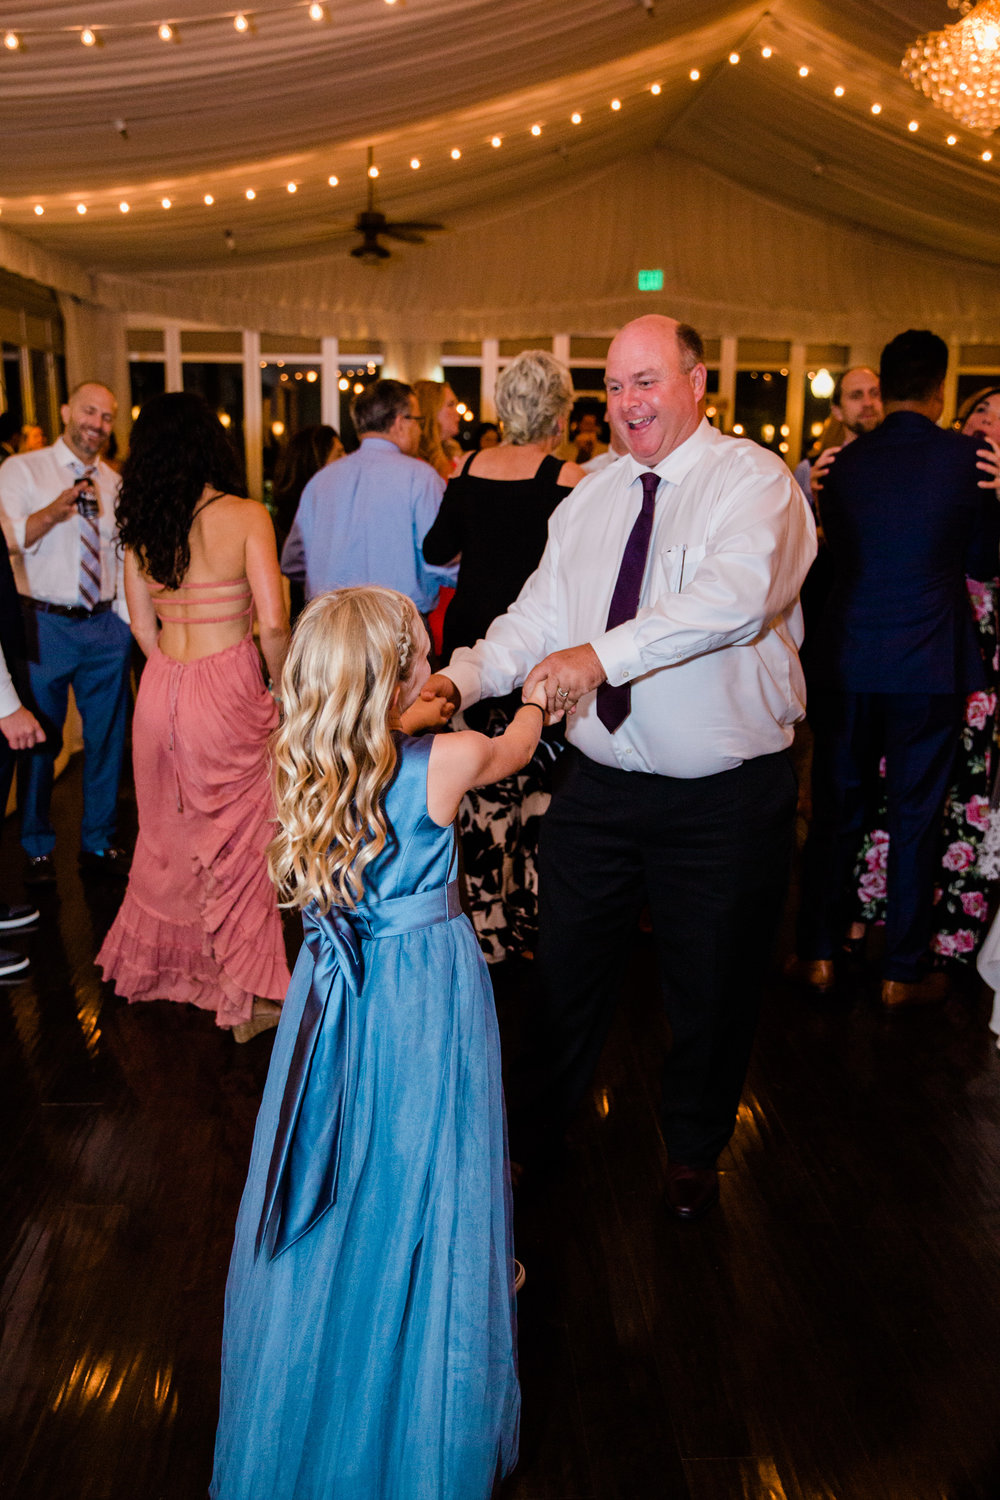 Neil+Christine_FairviewWedding_7.28.18-942.jpg